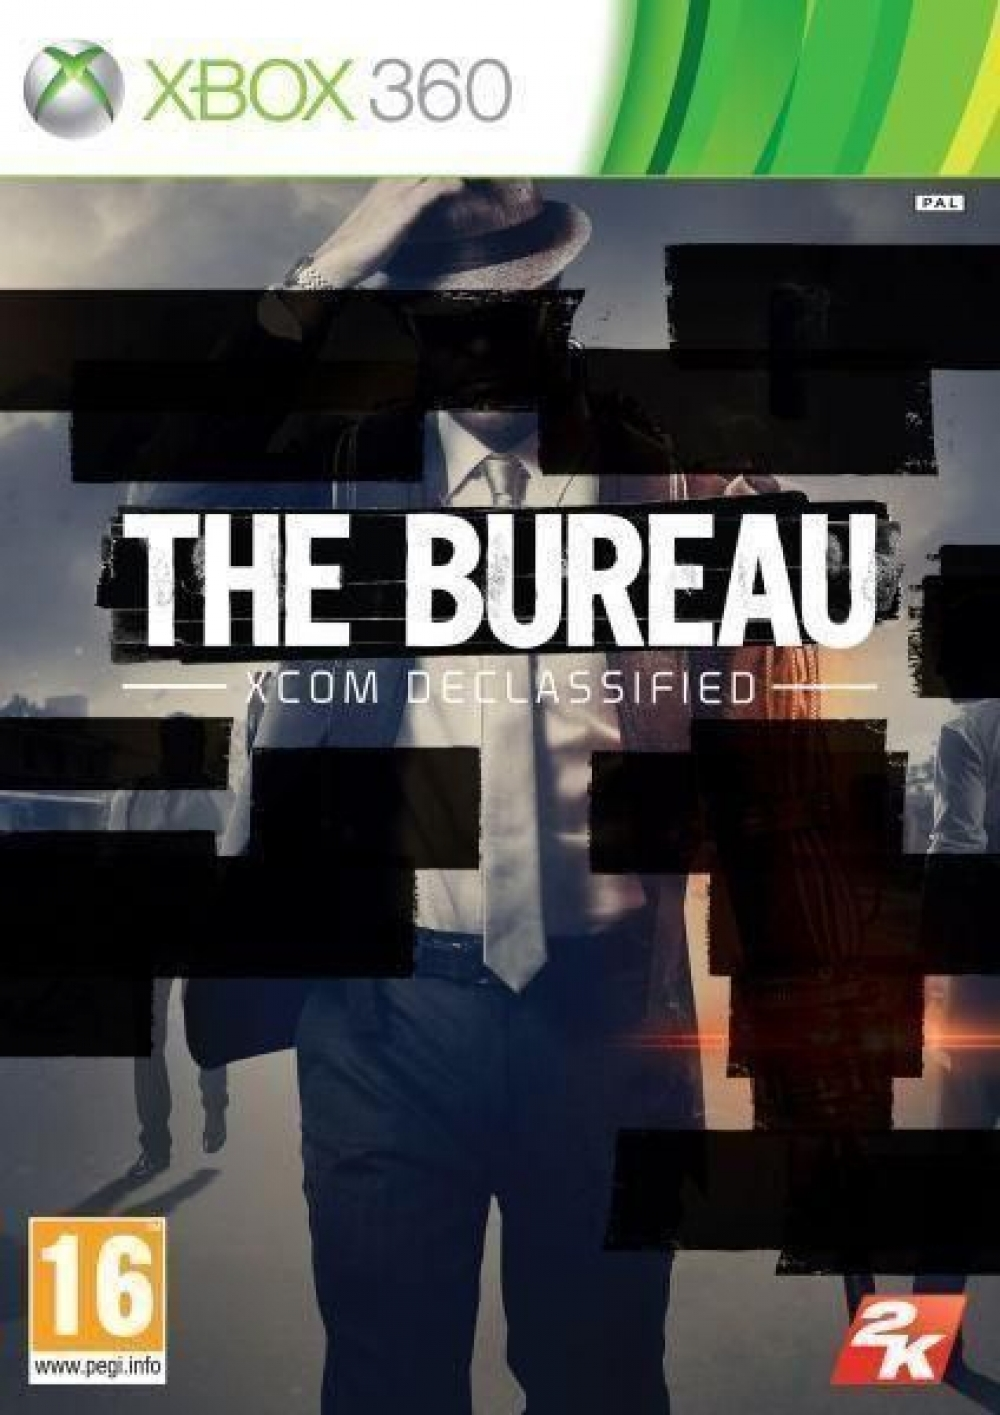 Joc The Bureau Xcom Declassified pentru Xbox 360 imagine